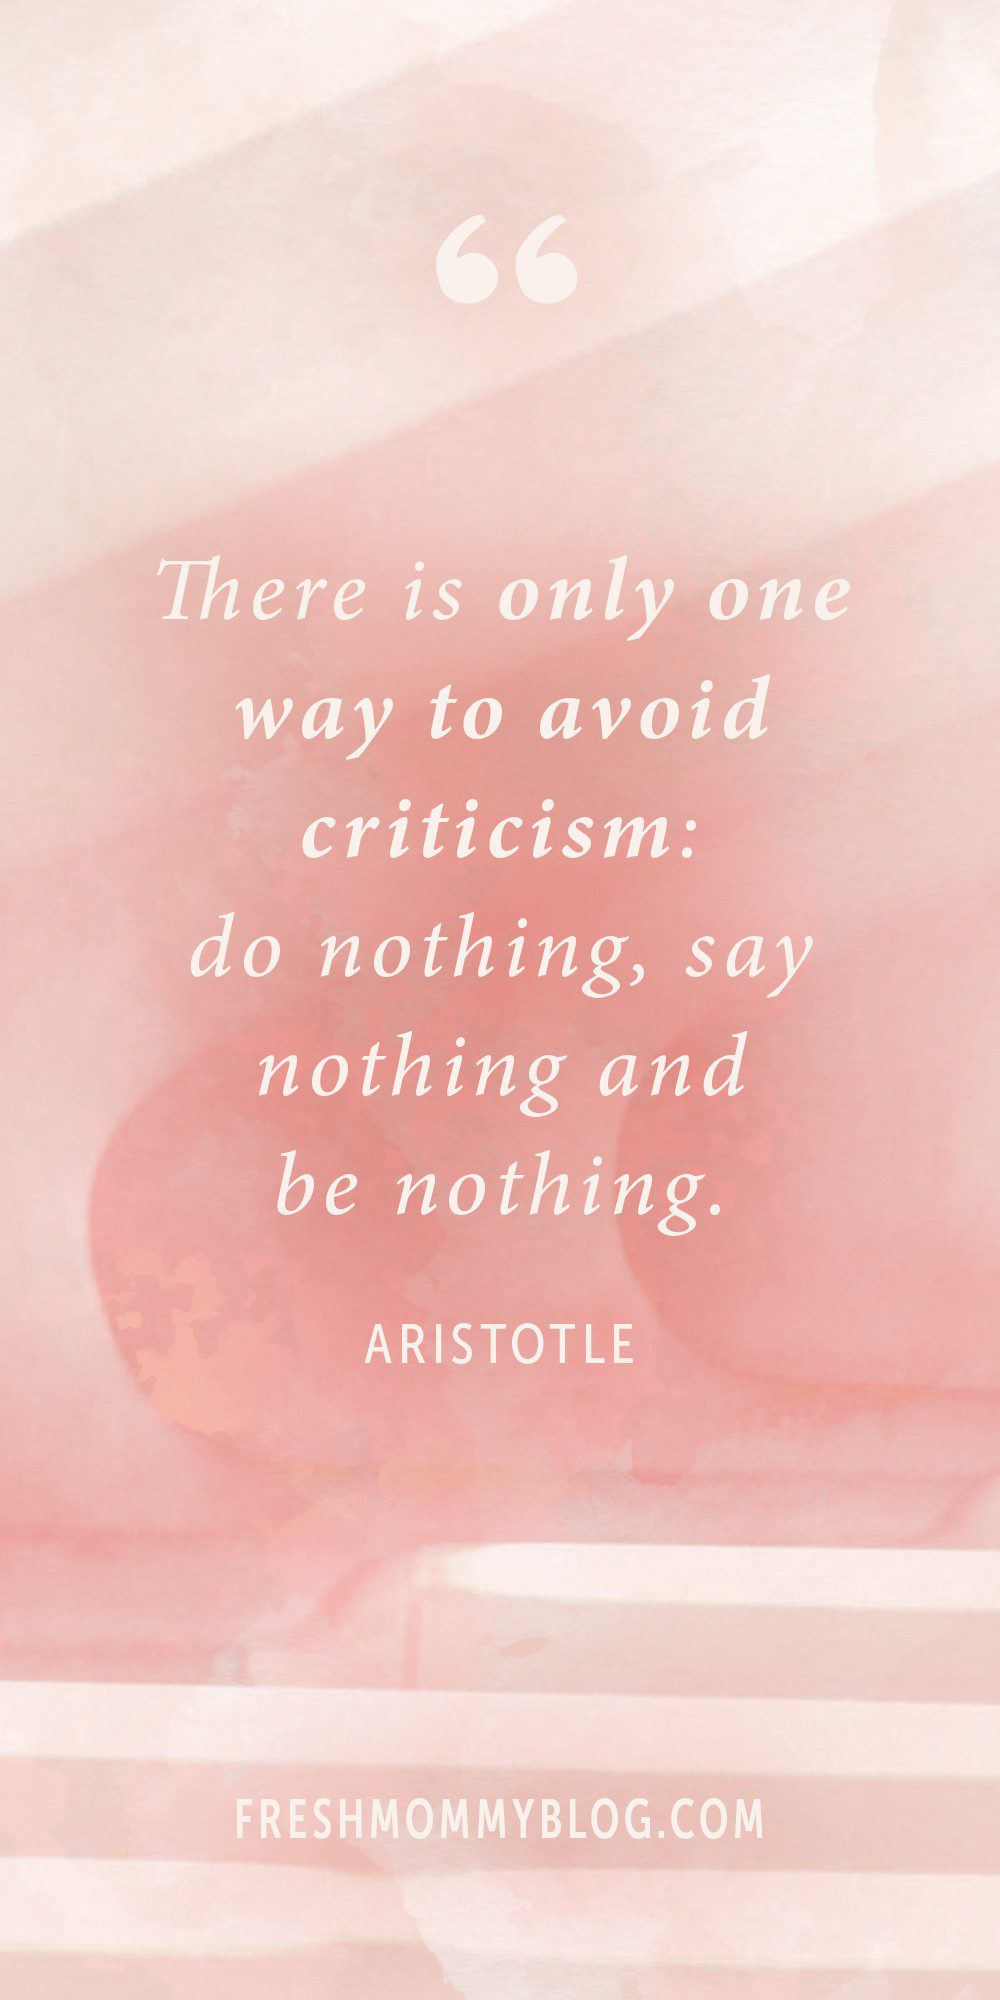 """There is only one way to avoid criticism: do nothing, say nothing and be nothing."" Aristotle 